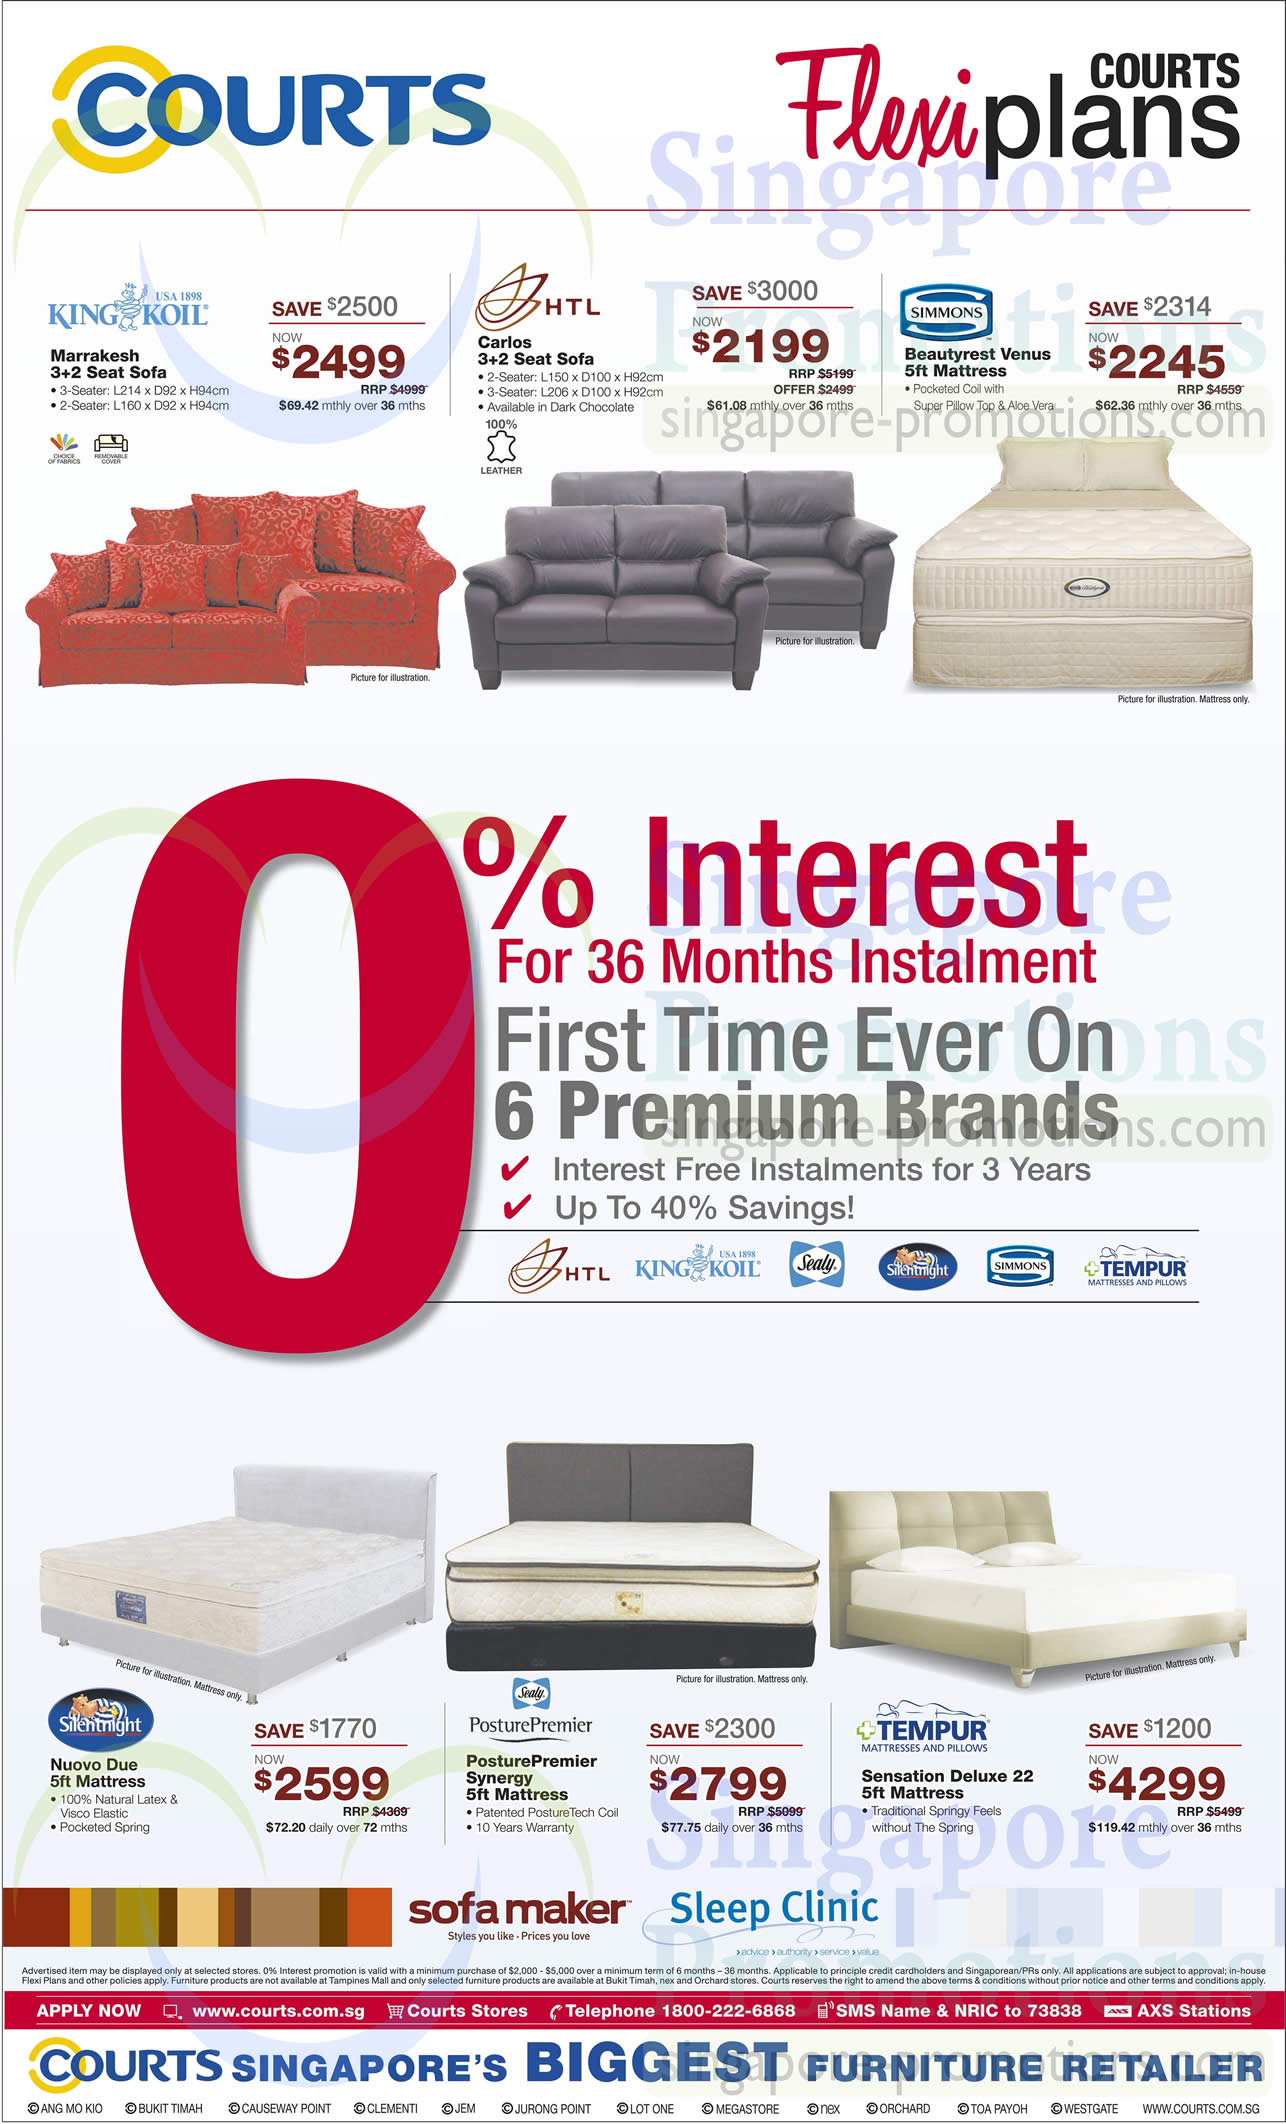 sofa sets mattresses king koil htl simmons silentnight sealy tempur courts biggest. Black Bedroom Furniture Sets. Home Design Ideas